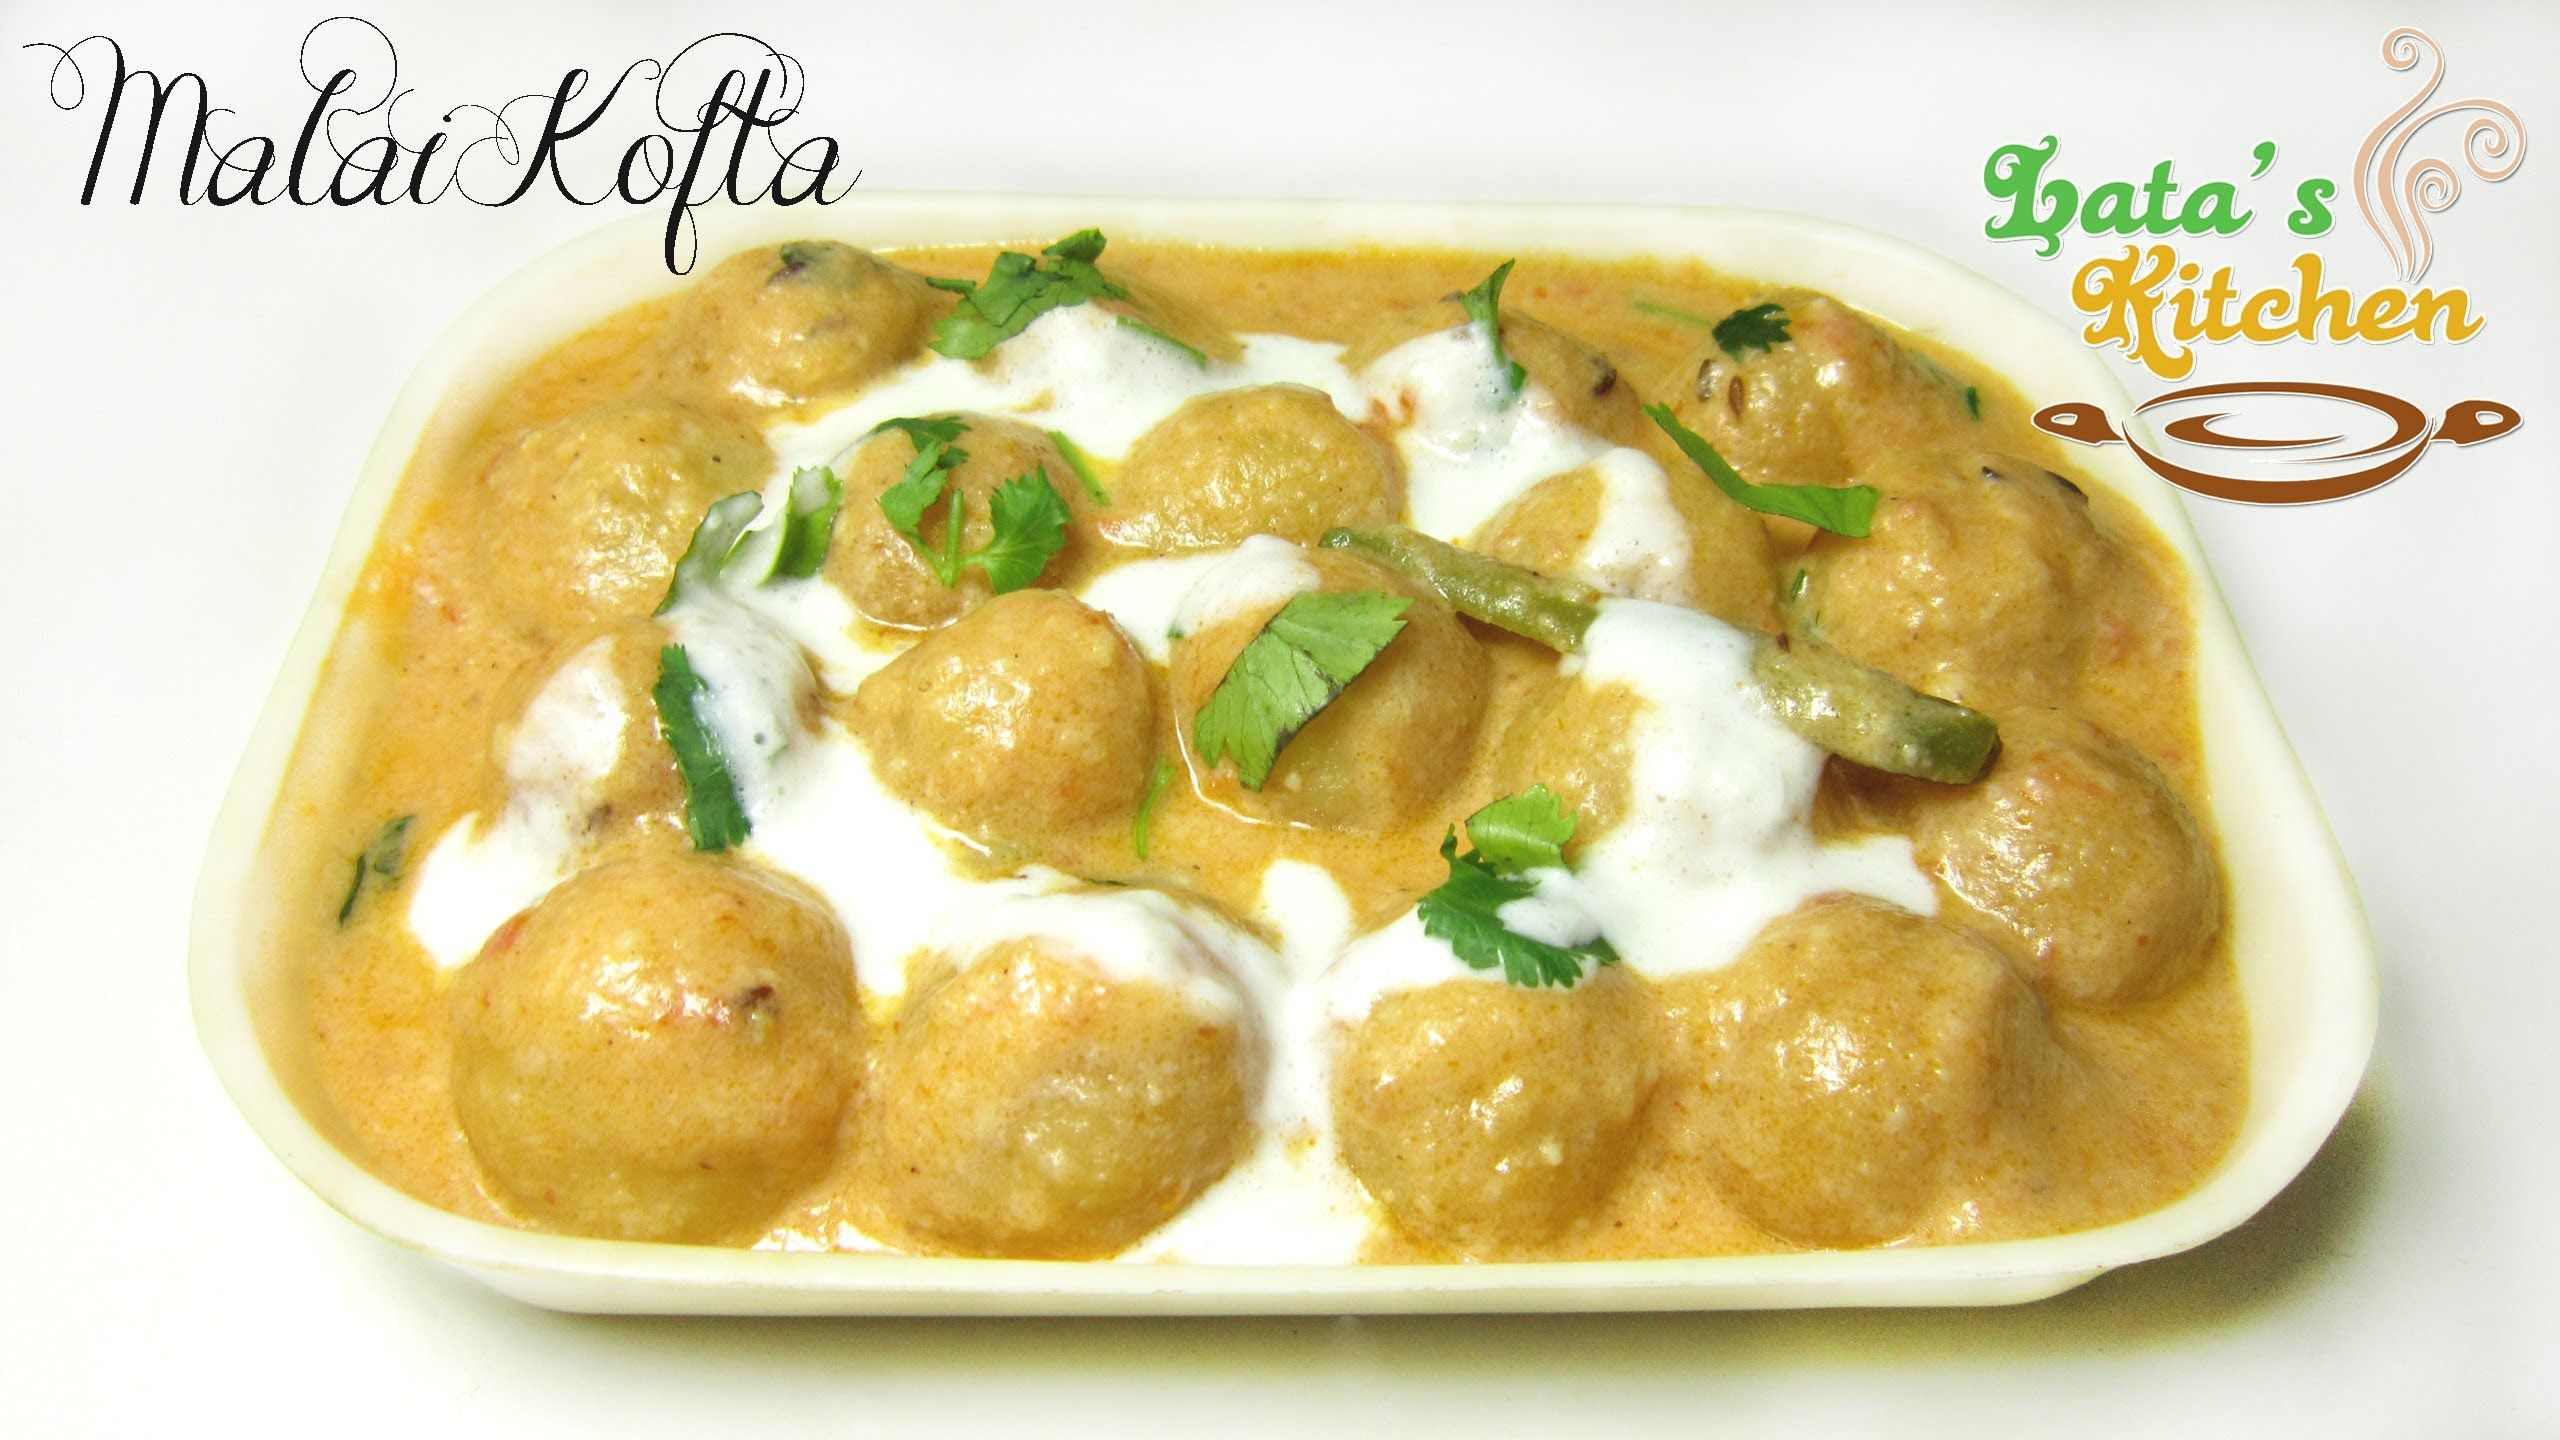 Malai kofta recipe indian vegetarian recipe video in hindi with malai kofta recipe indian vegetarian recipe video in hindi with english subtitles by lata jain forumfinder Image collections